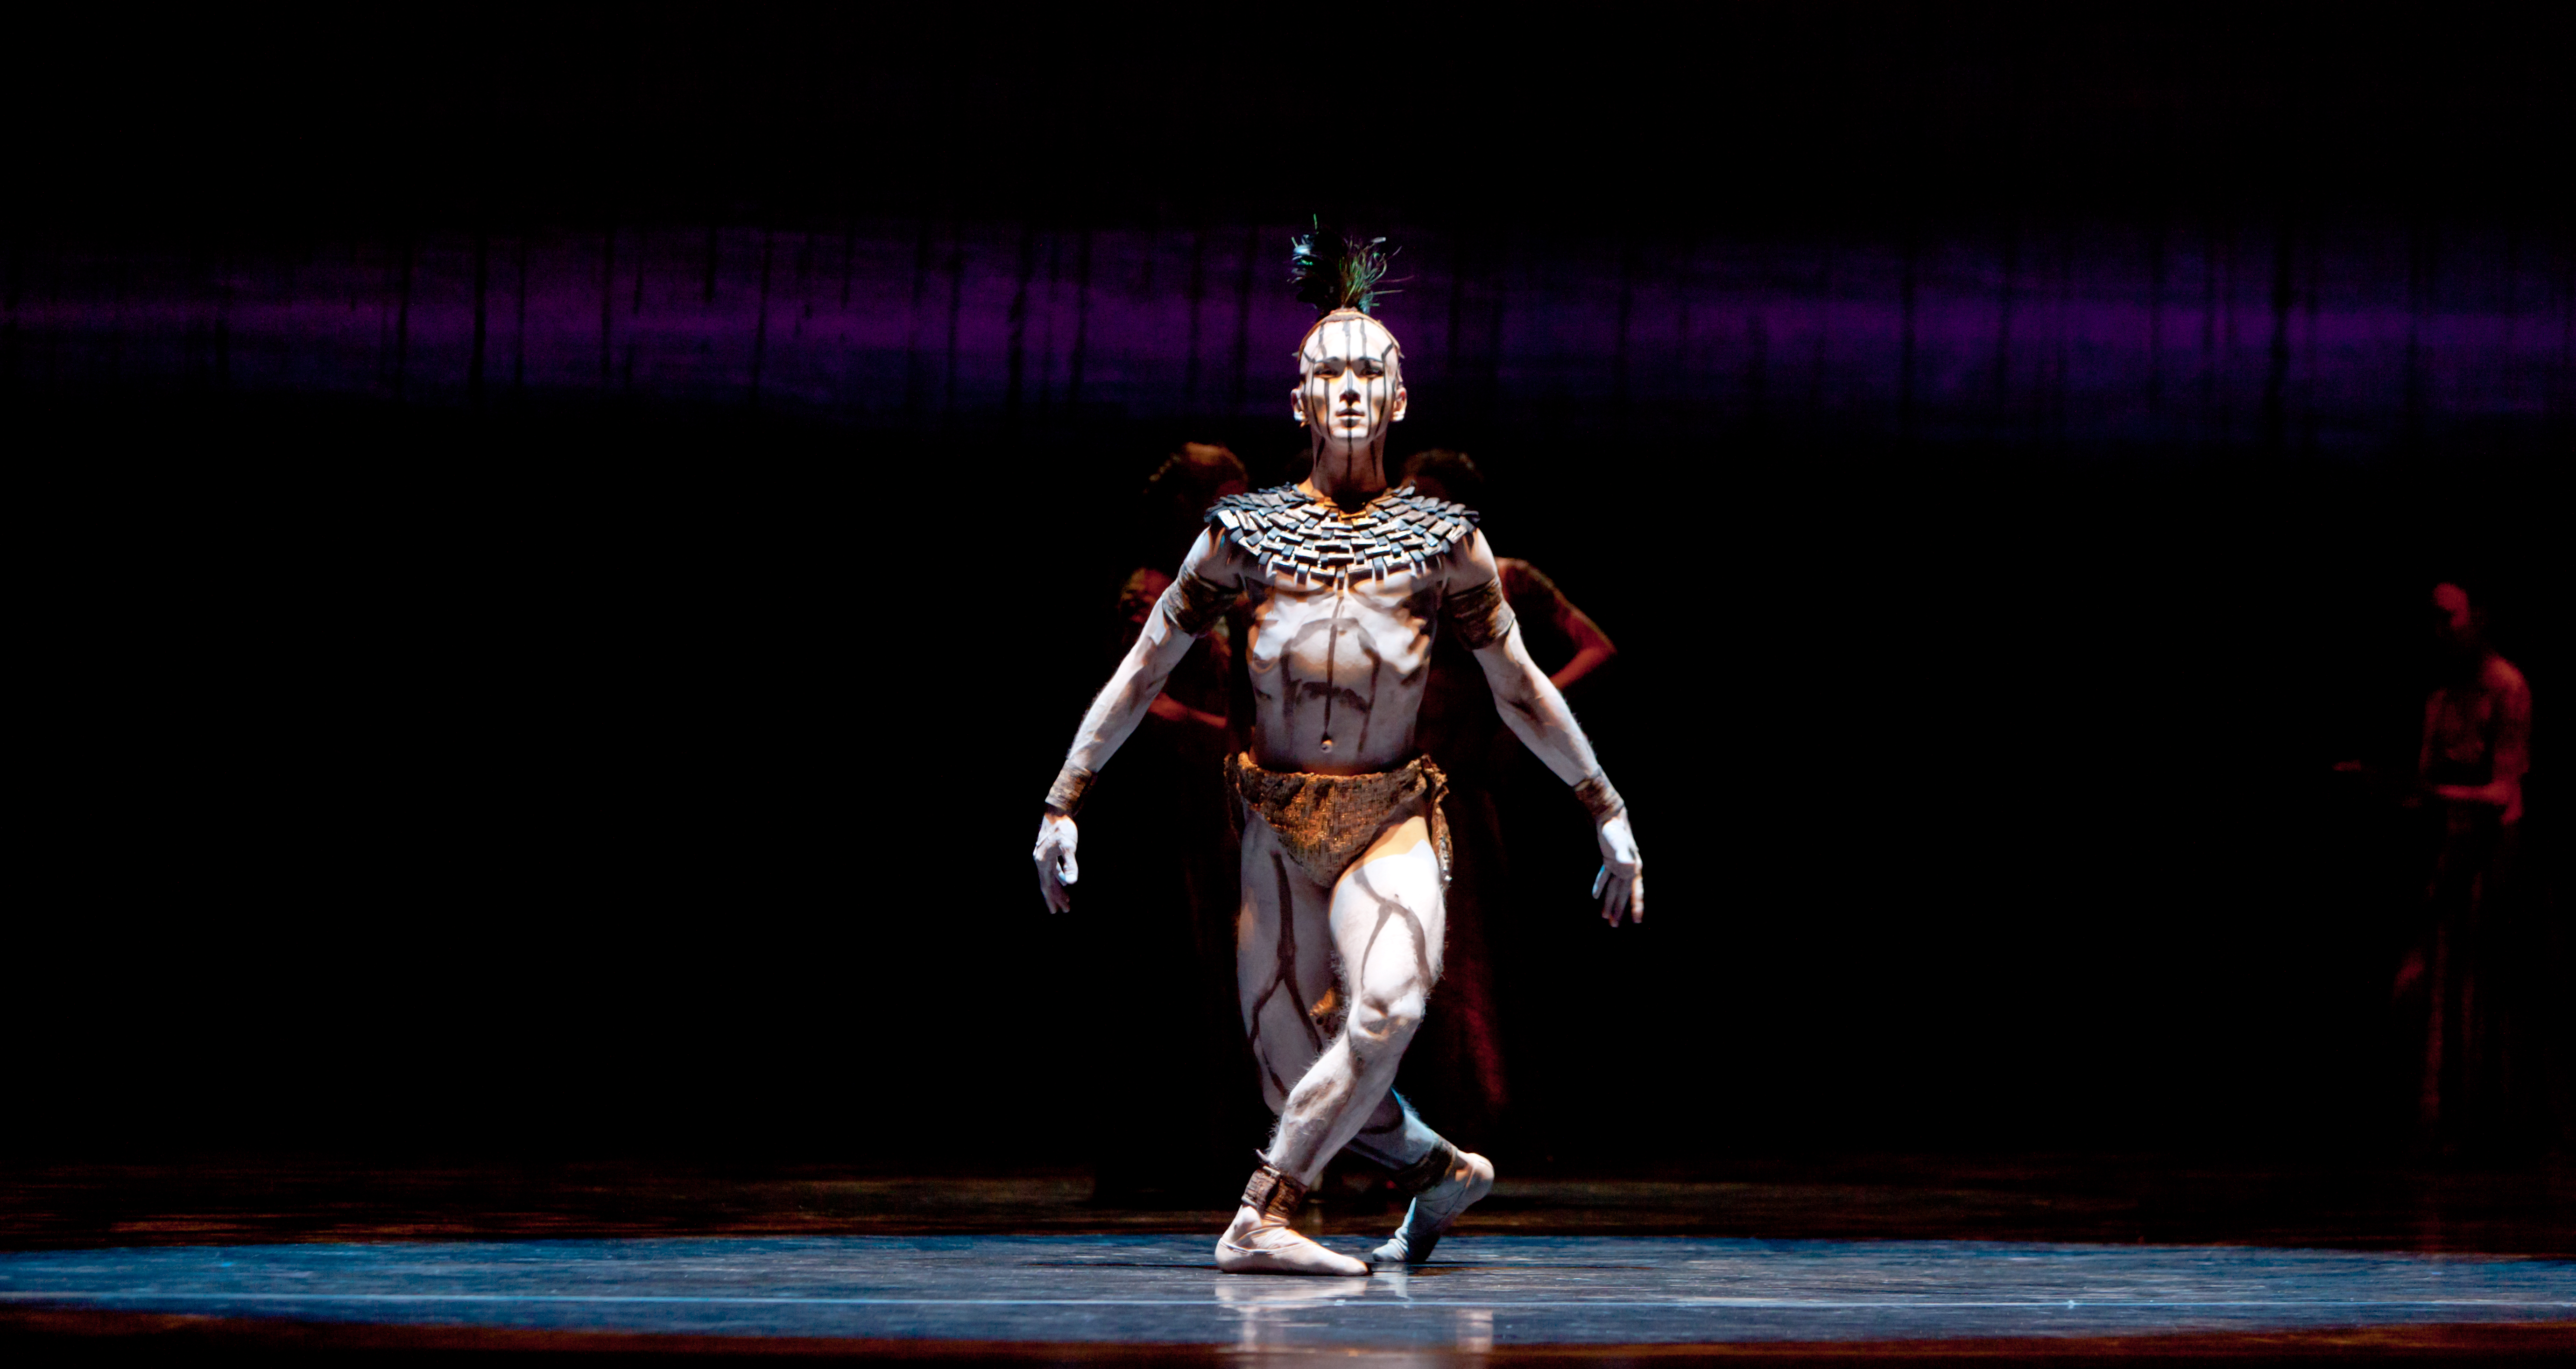 BWW Interviews: Charles-Louis Yoshiyama Talks Houston Ballet's THE NUTCRACKER